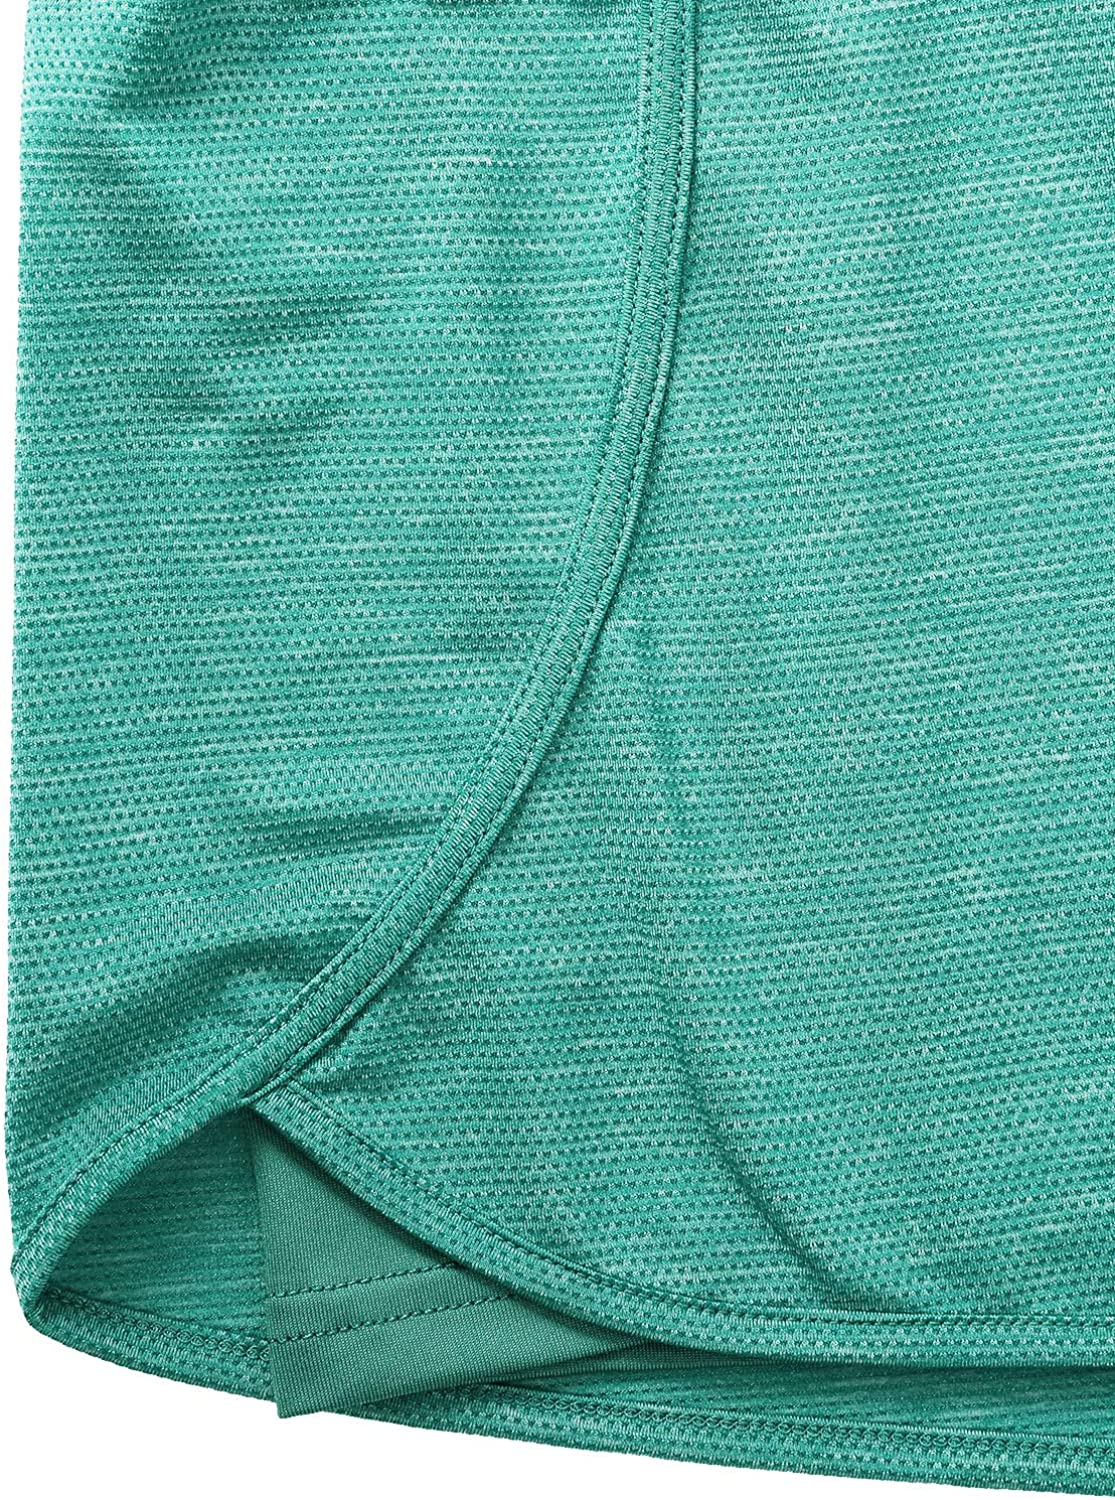 Blevonh Women Yoga Running Shorts 2 in 1 Workout Athletic Shorts with Pockets S-3XL